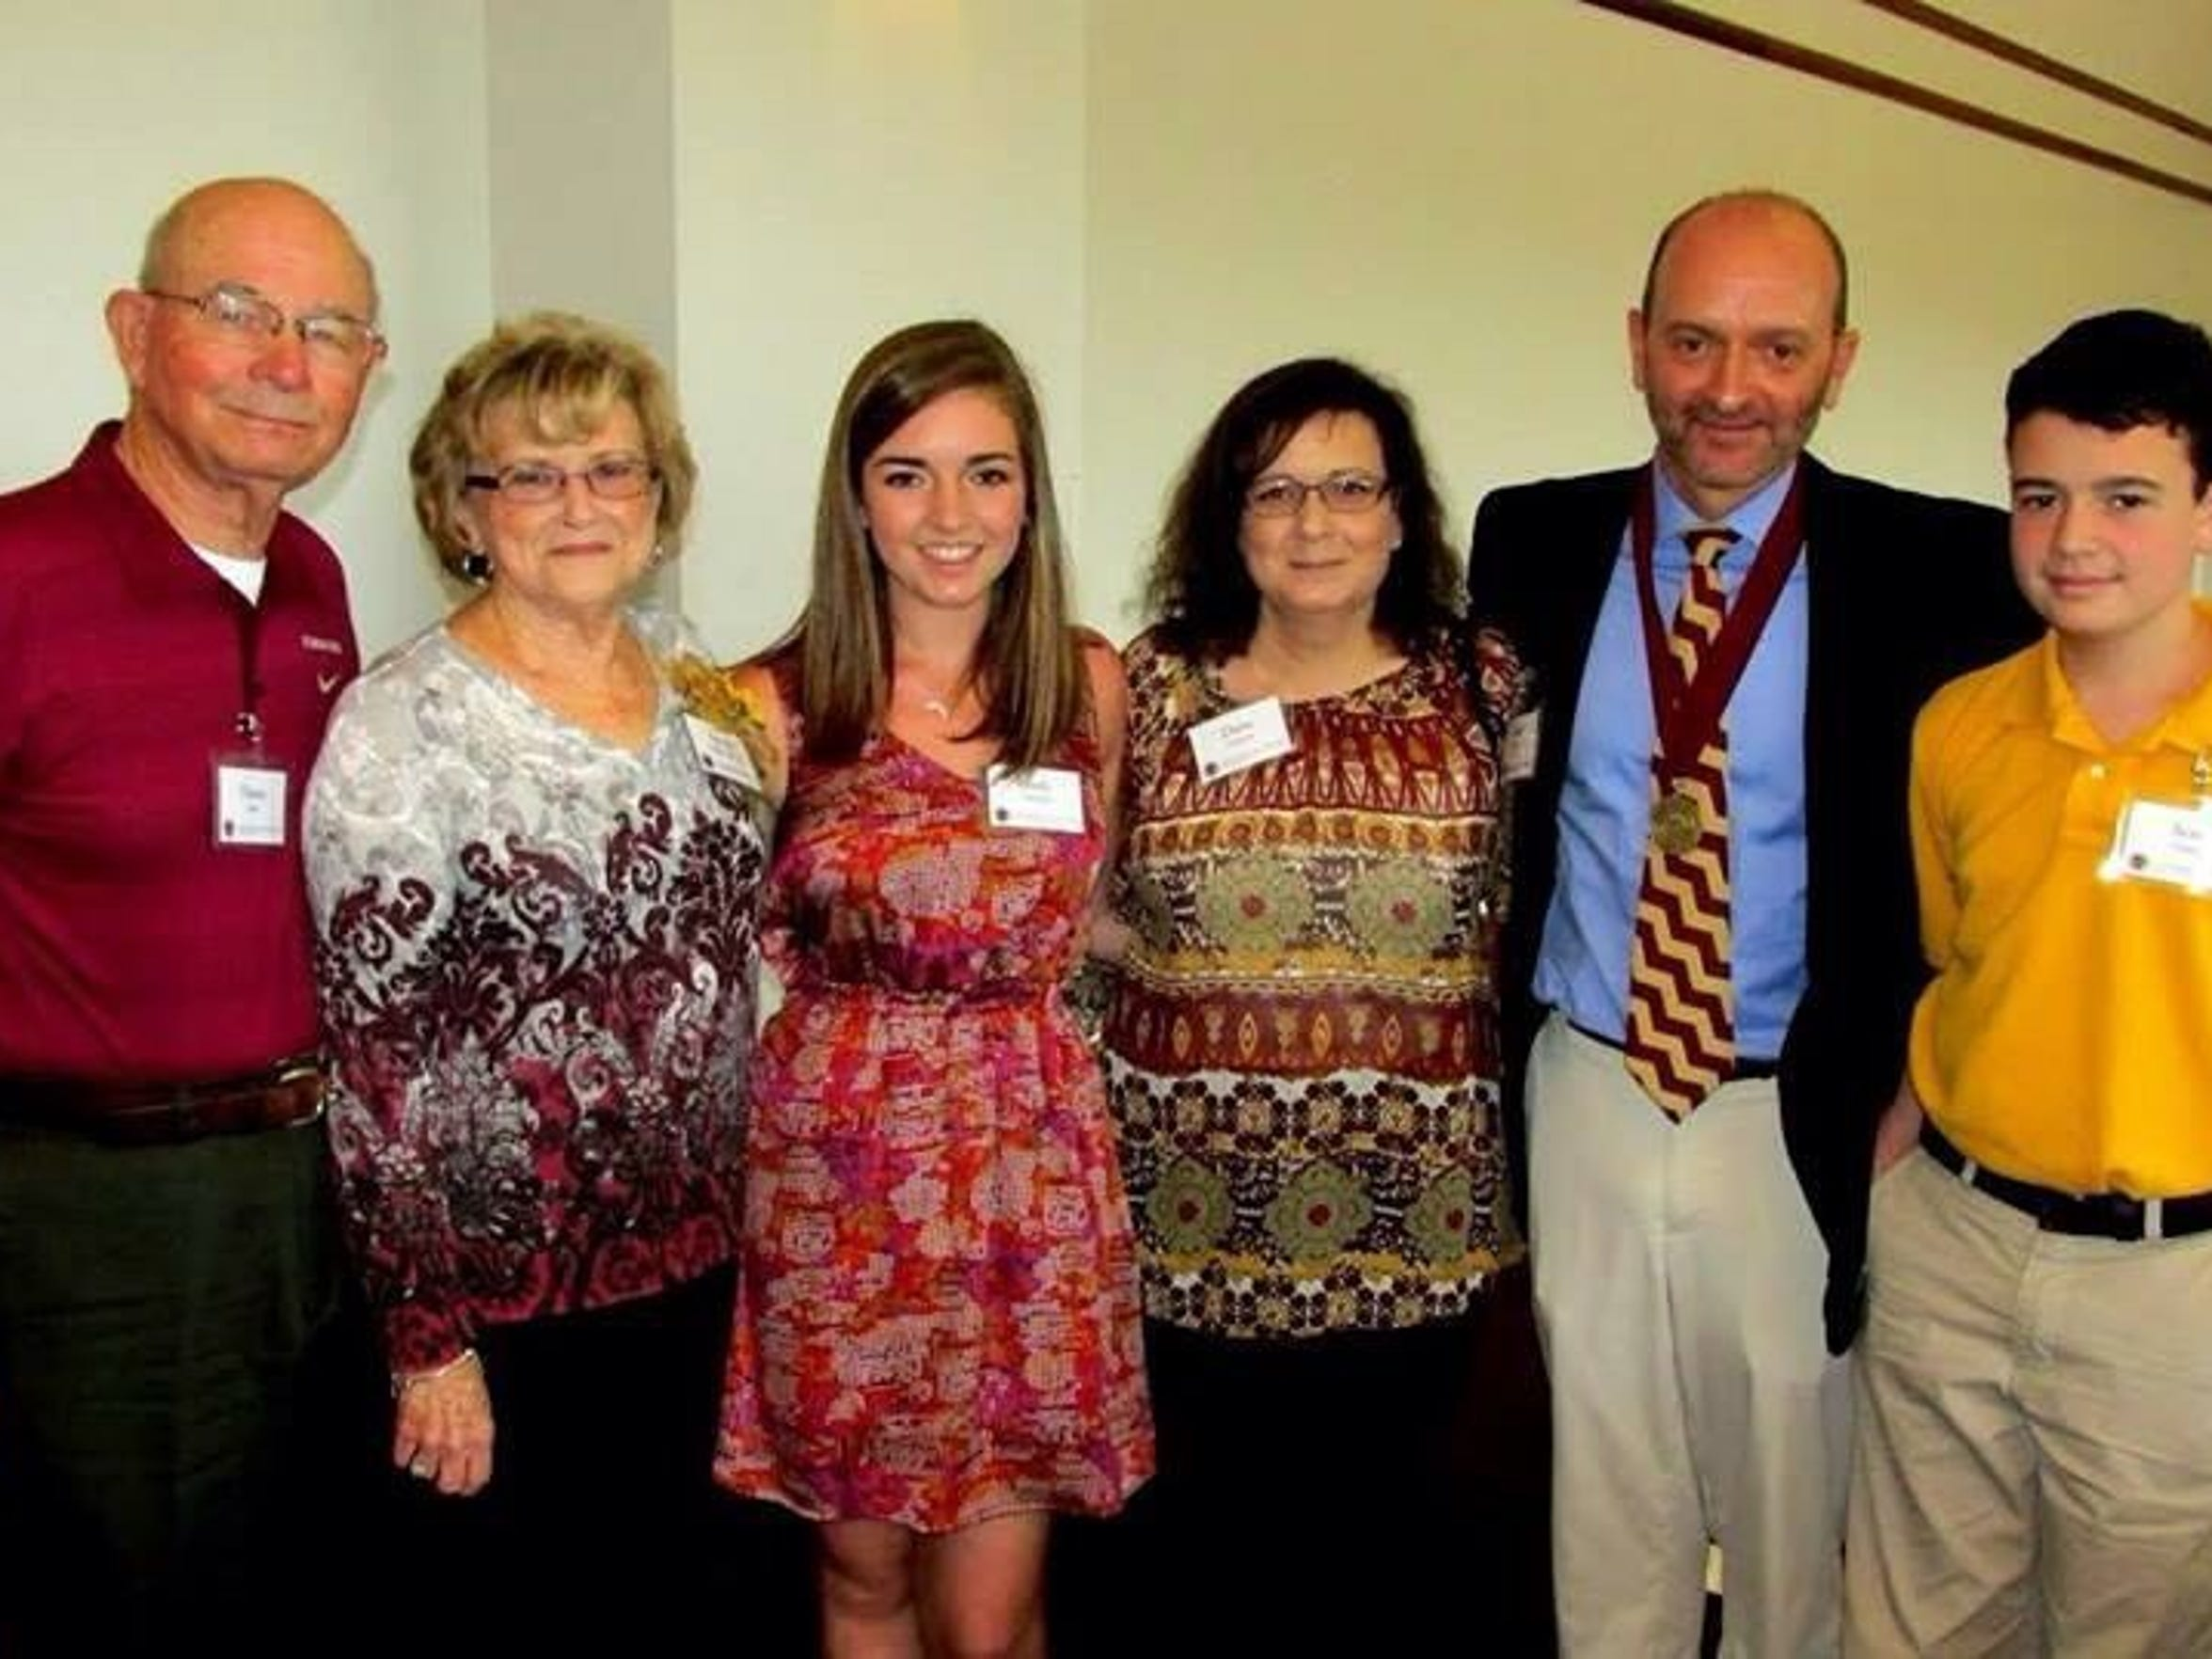 Pictured from left to right: My grandparents, Grand-Danny and Nanese; me; my mom; Mark; and Scott. Picture taken when Mark was inducted into the Circle of Gold during the spring of my freshman year.